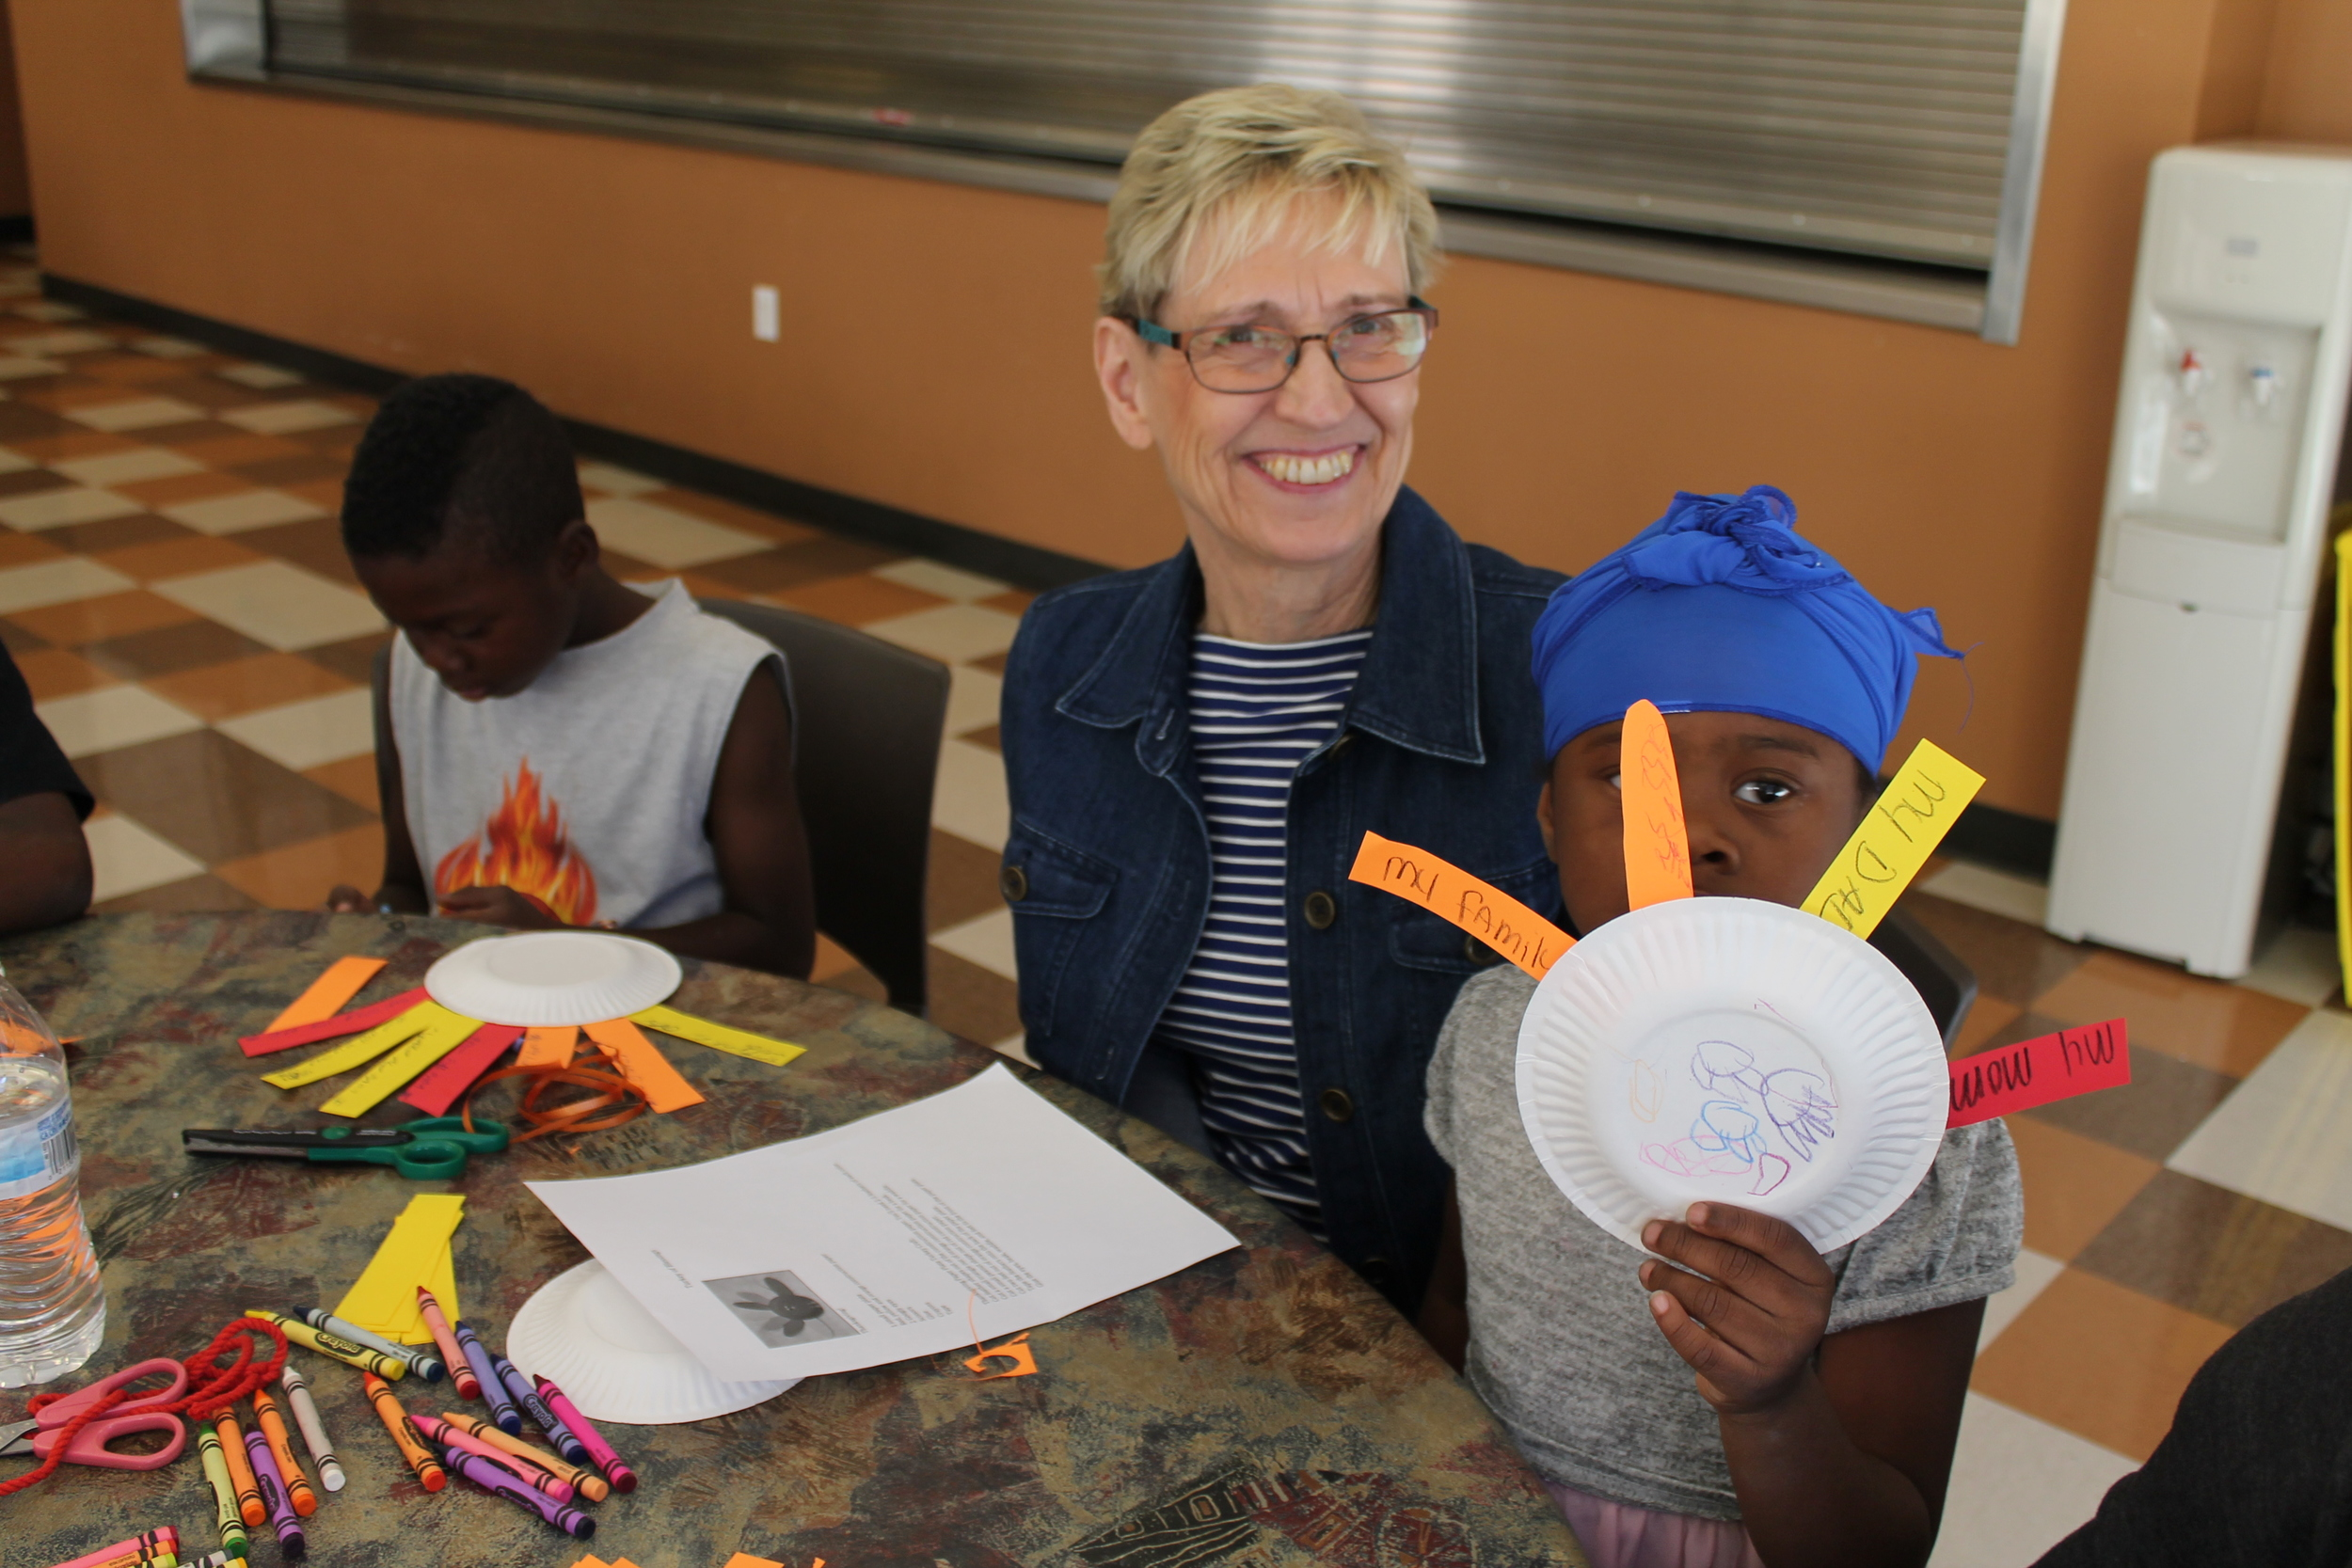 What thanks words would you write on your turkey feathers?  Marilyn Roelse gathered the craft and Major Martha Davey gathered the shelter families for an afternoon of being grateful for what God has provided.